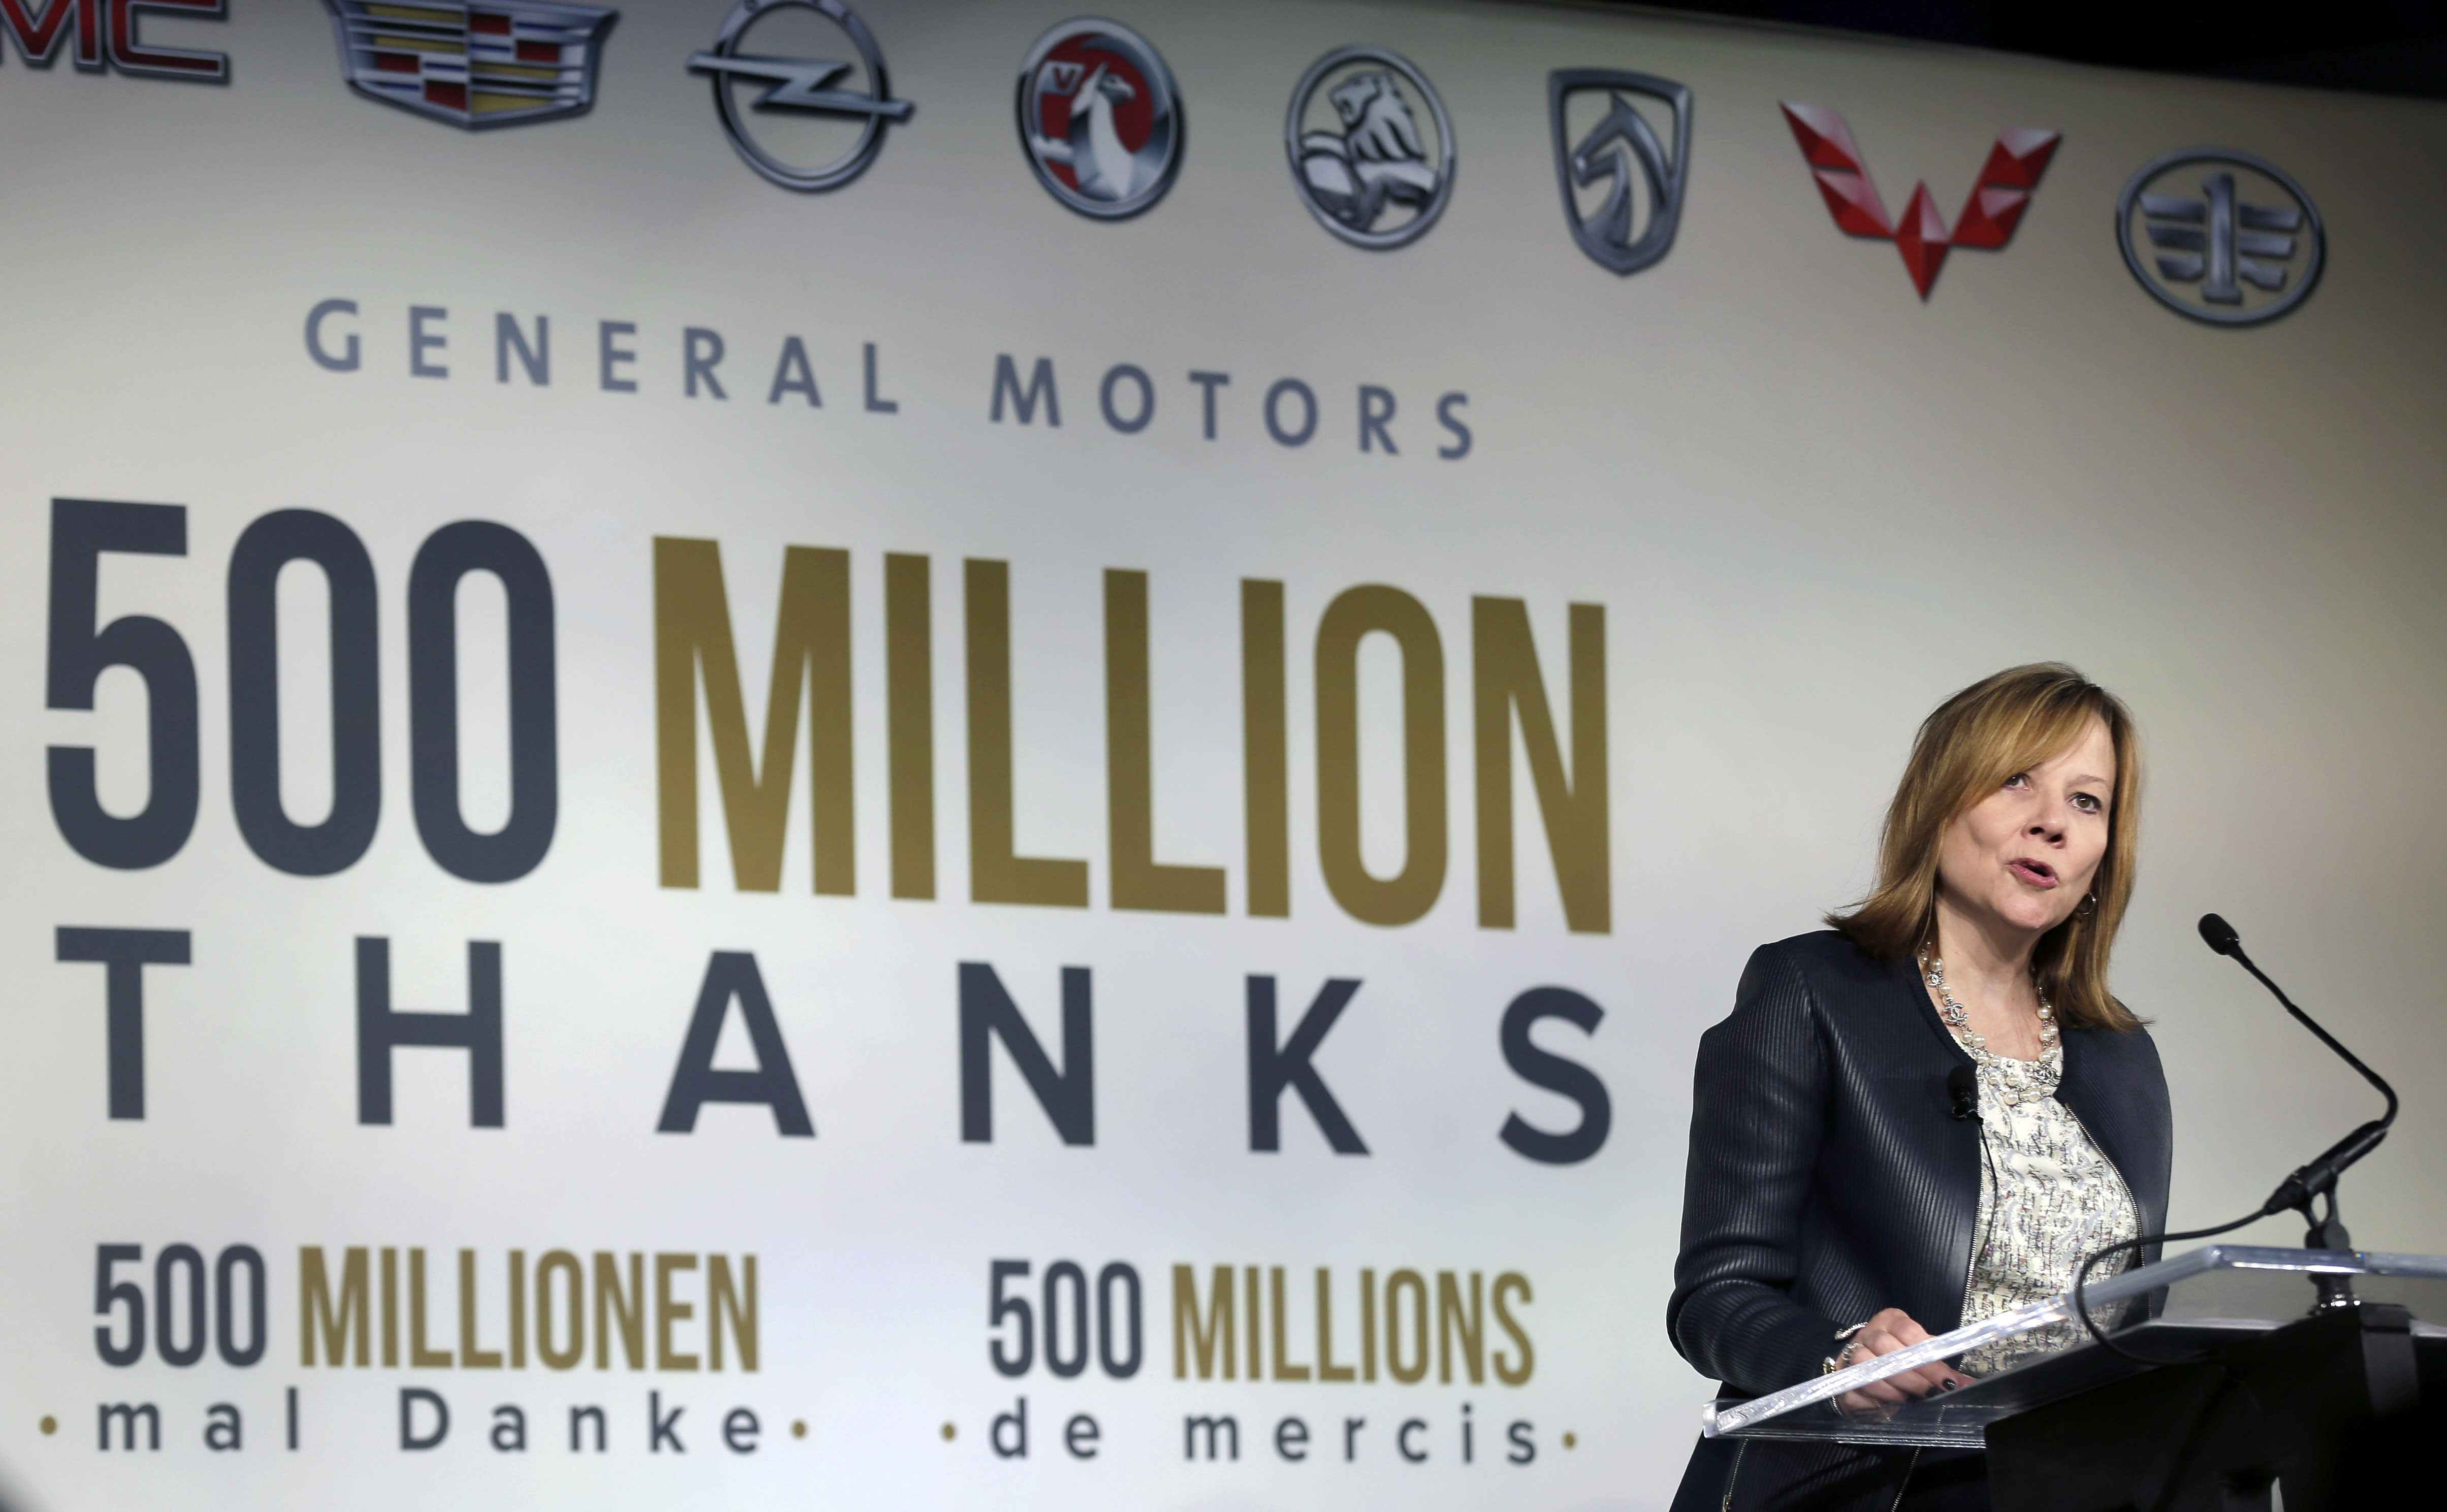 General Motors will invest $174 million in Kansas plant